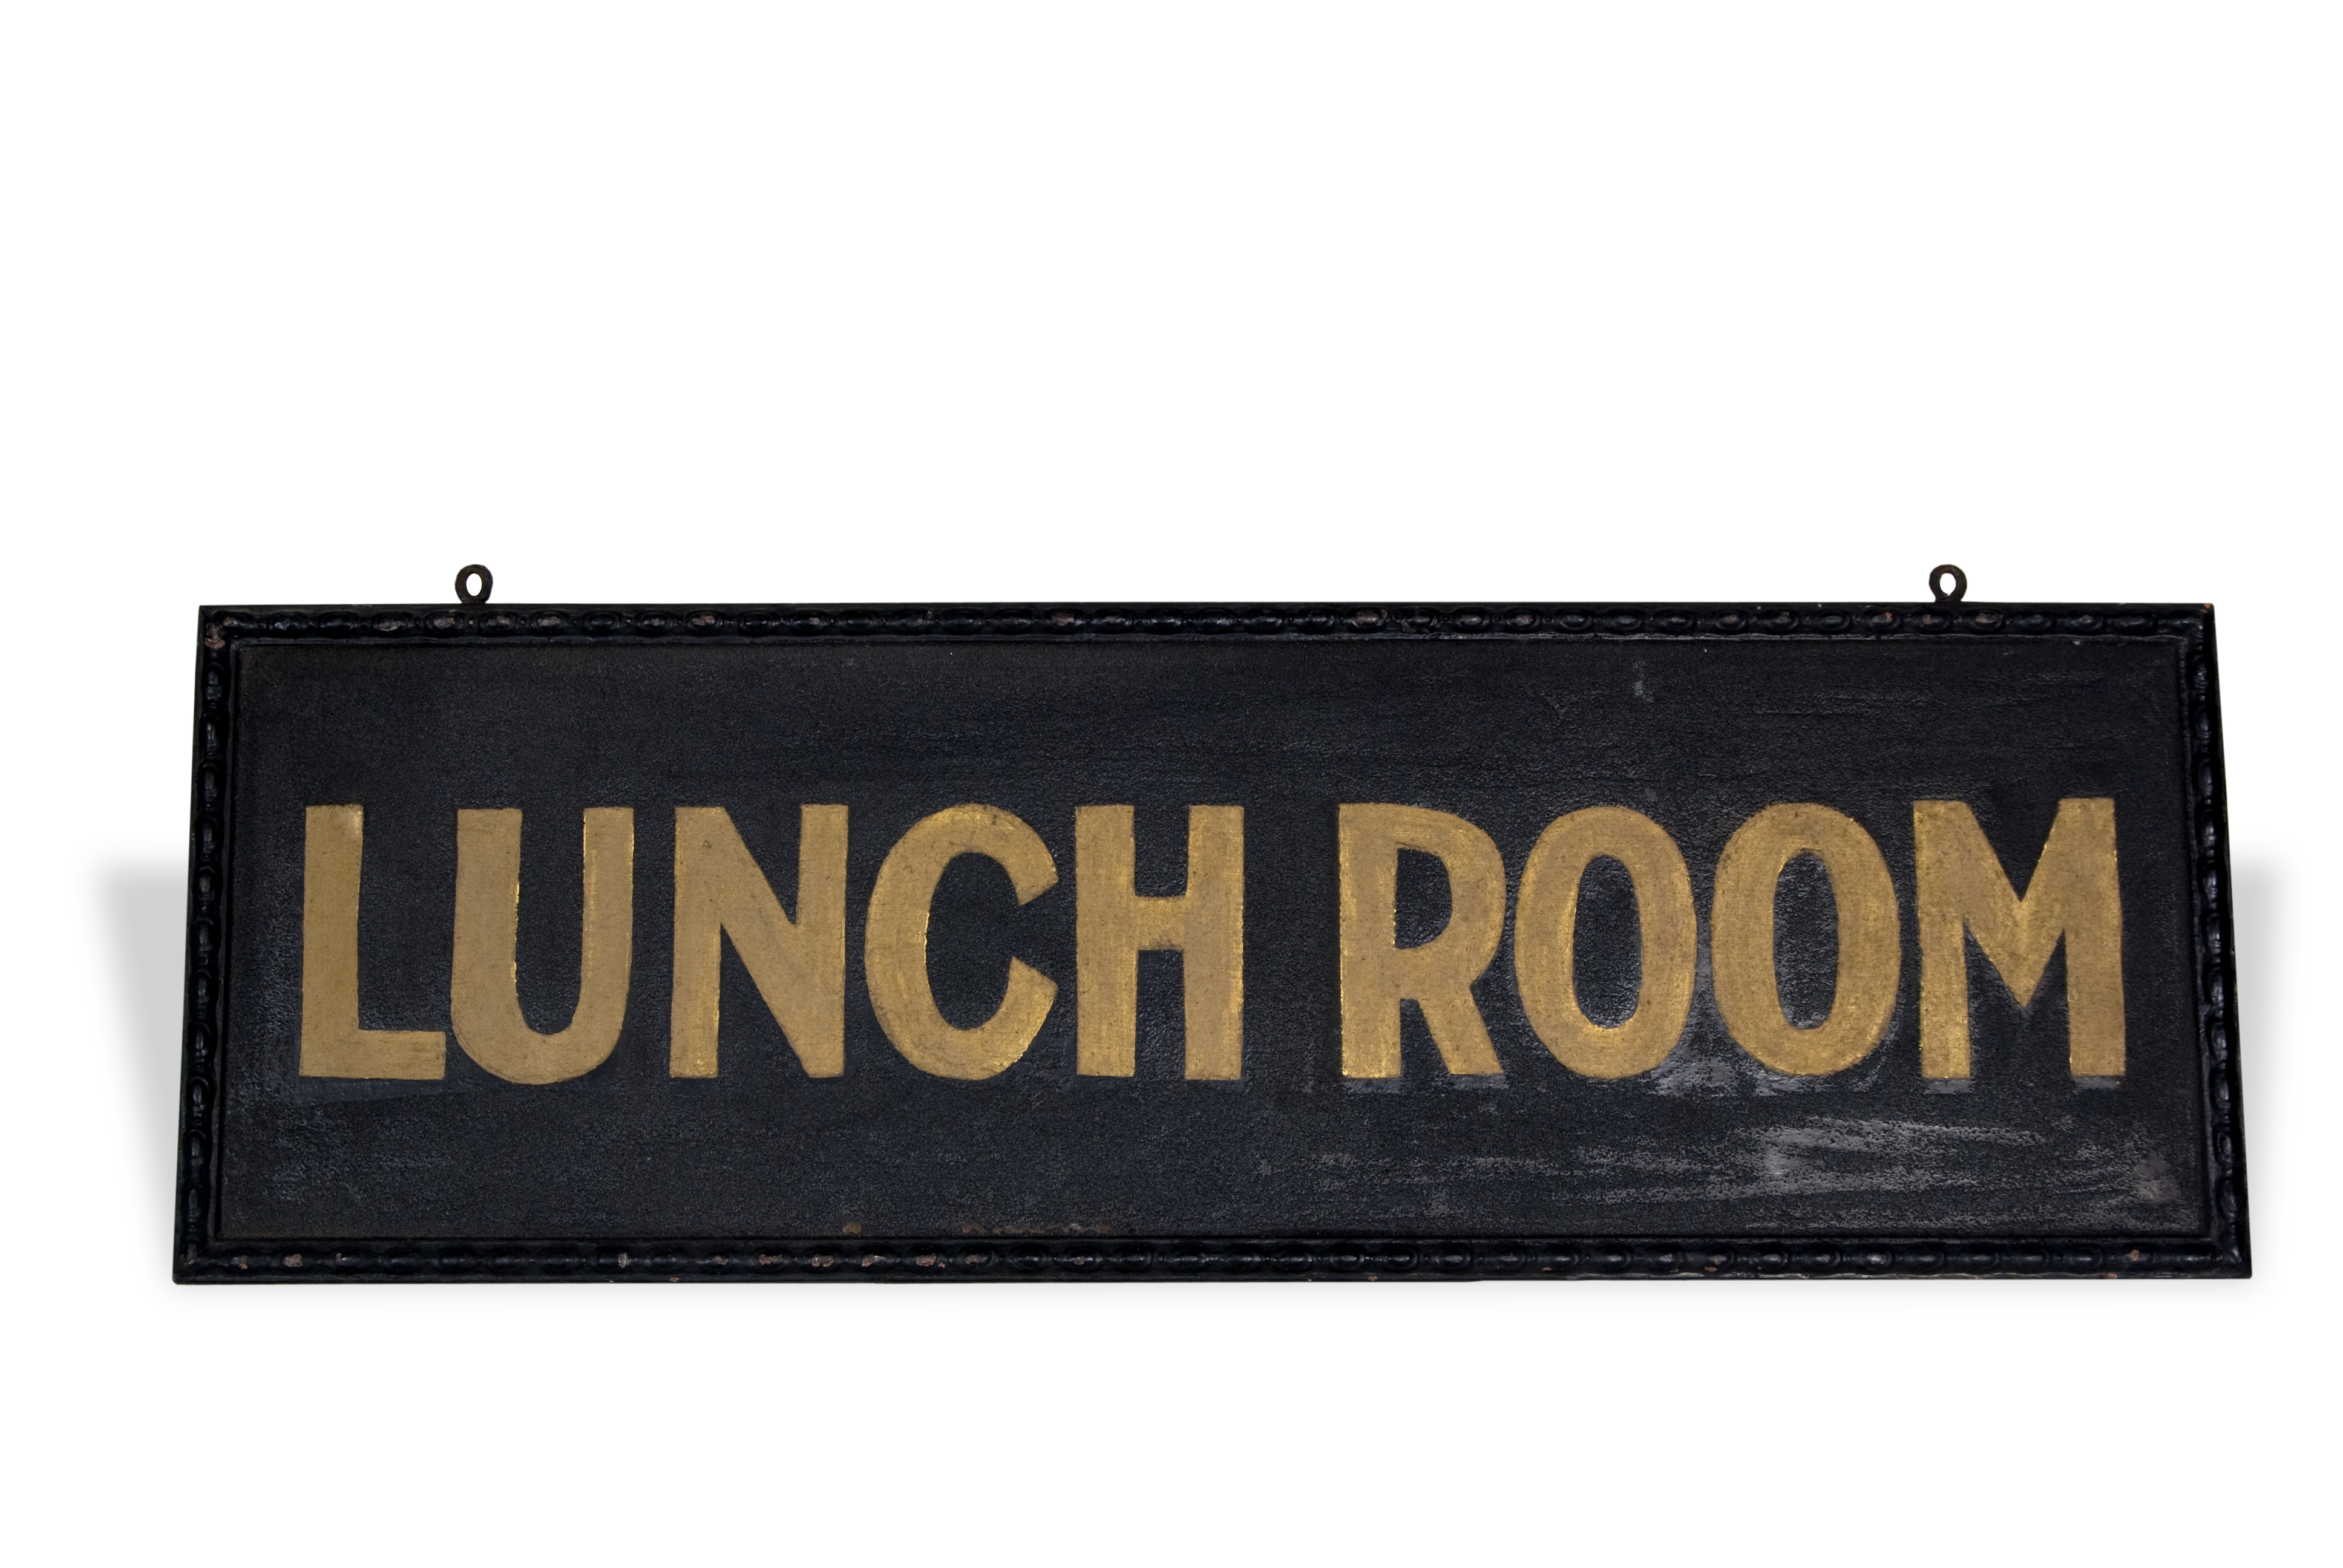 Railroad lunchroom sign